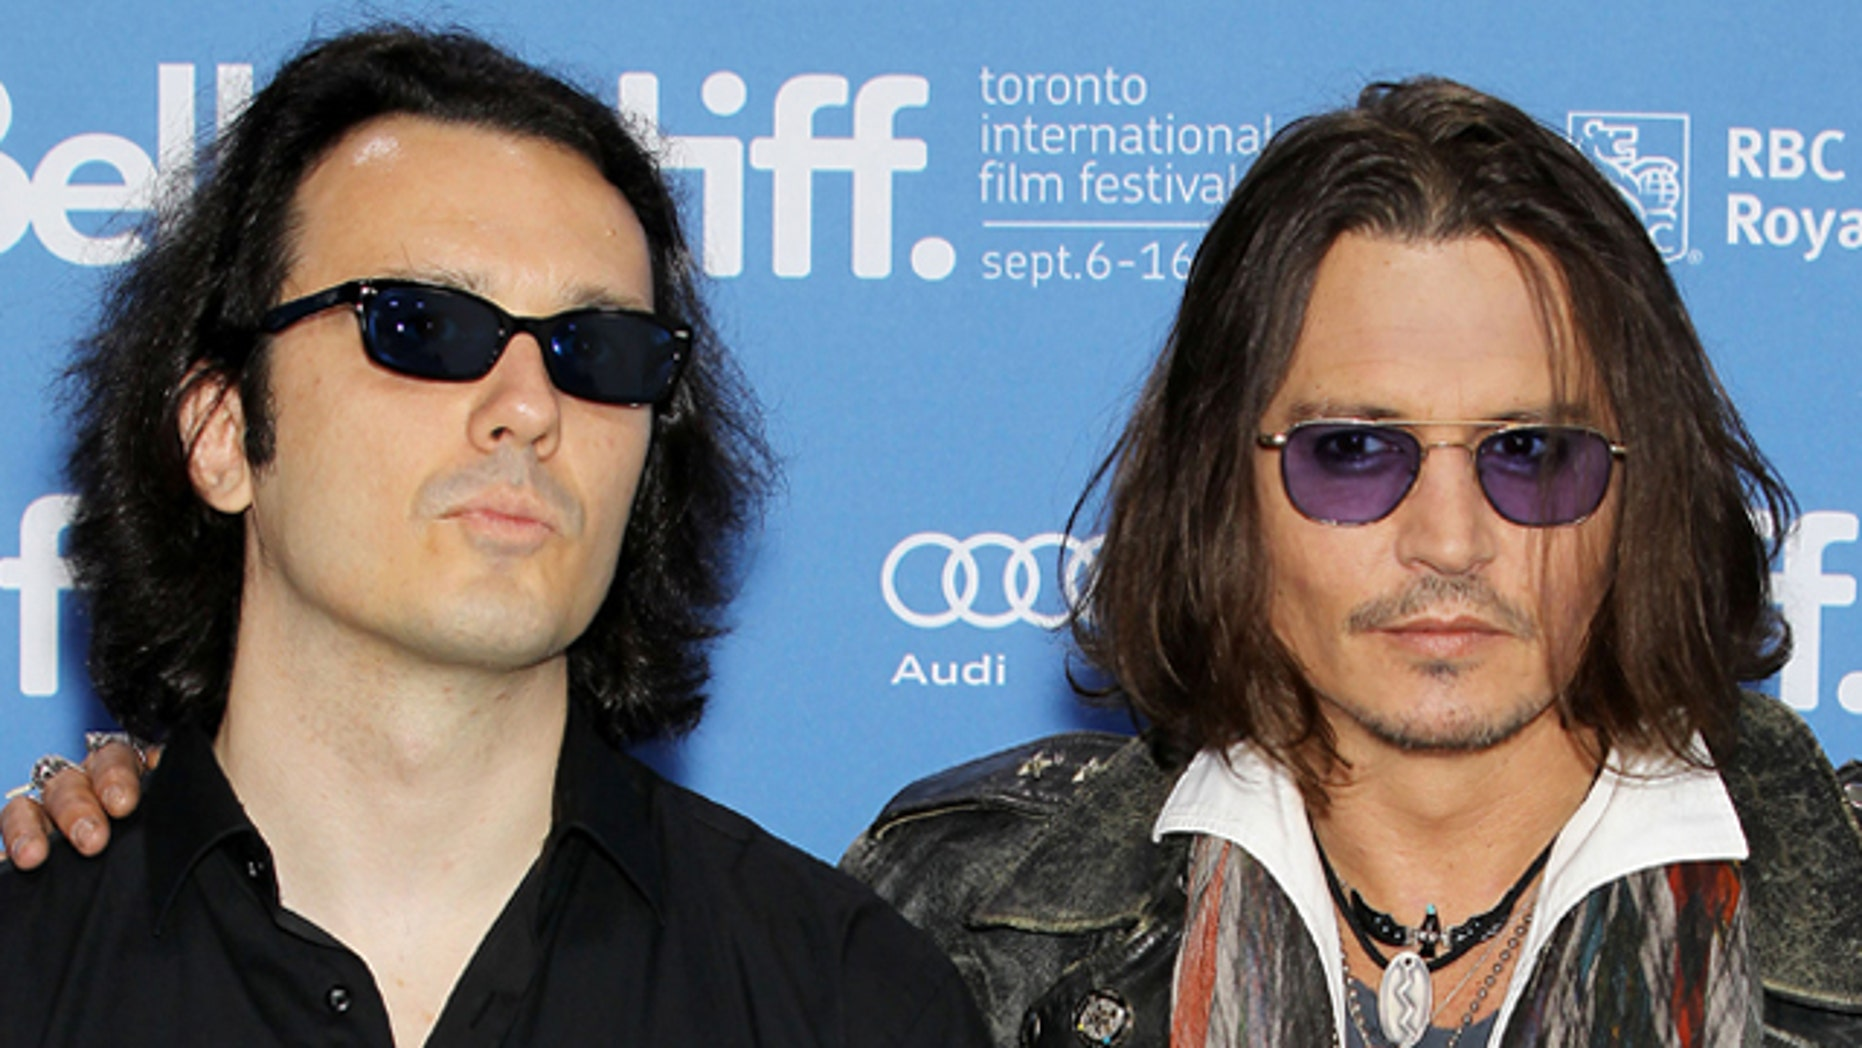 """Sept. 8, 2012: Damien Echols, one of the West Memphis Three, and actor Johnny Depp appear at a press conference for """"West of Memphis"""" at the 2012 Toronto International Film Festival. The pair, Echols told FoxNews.com, are """"like brothers"""" and have four matching tattoos. (AP/STARPIX)"""